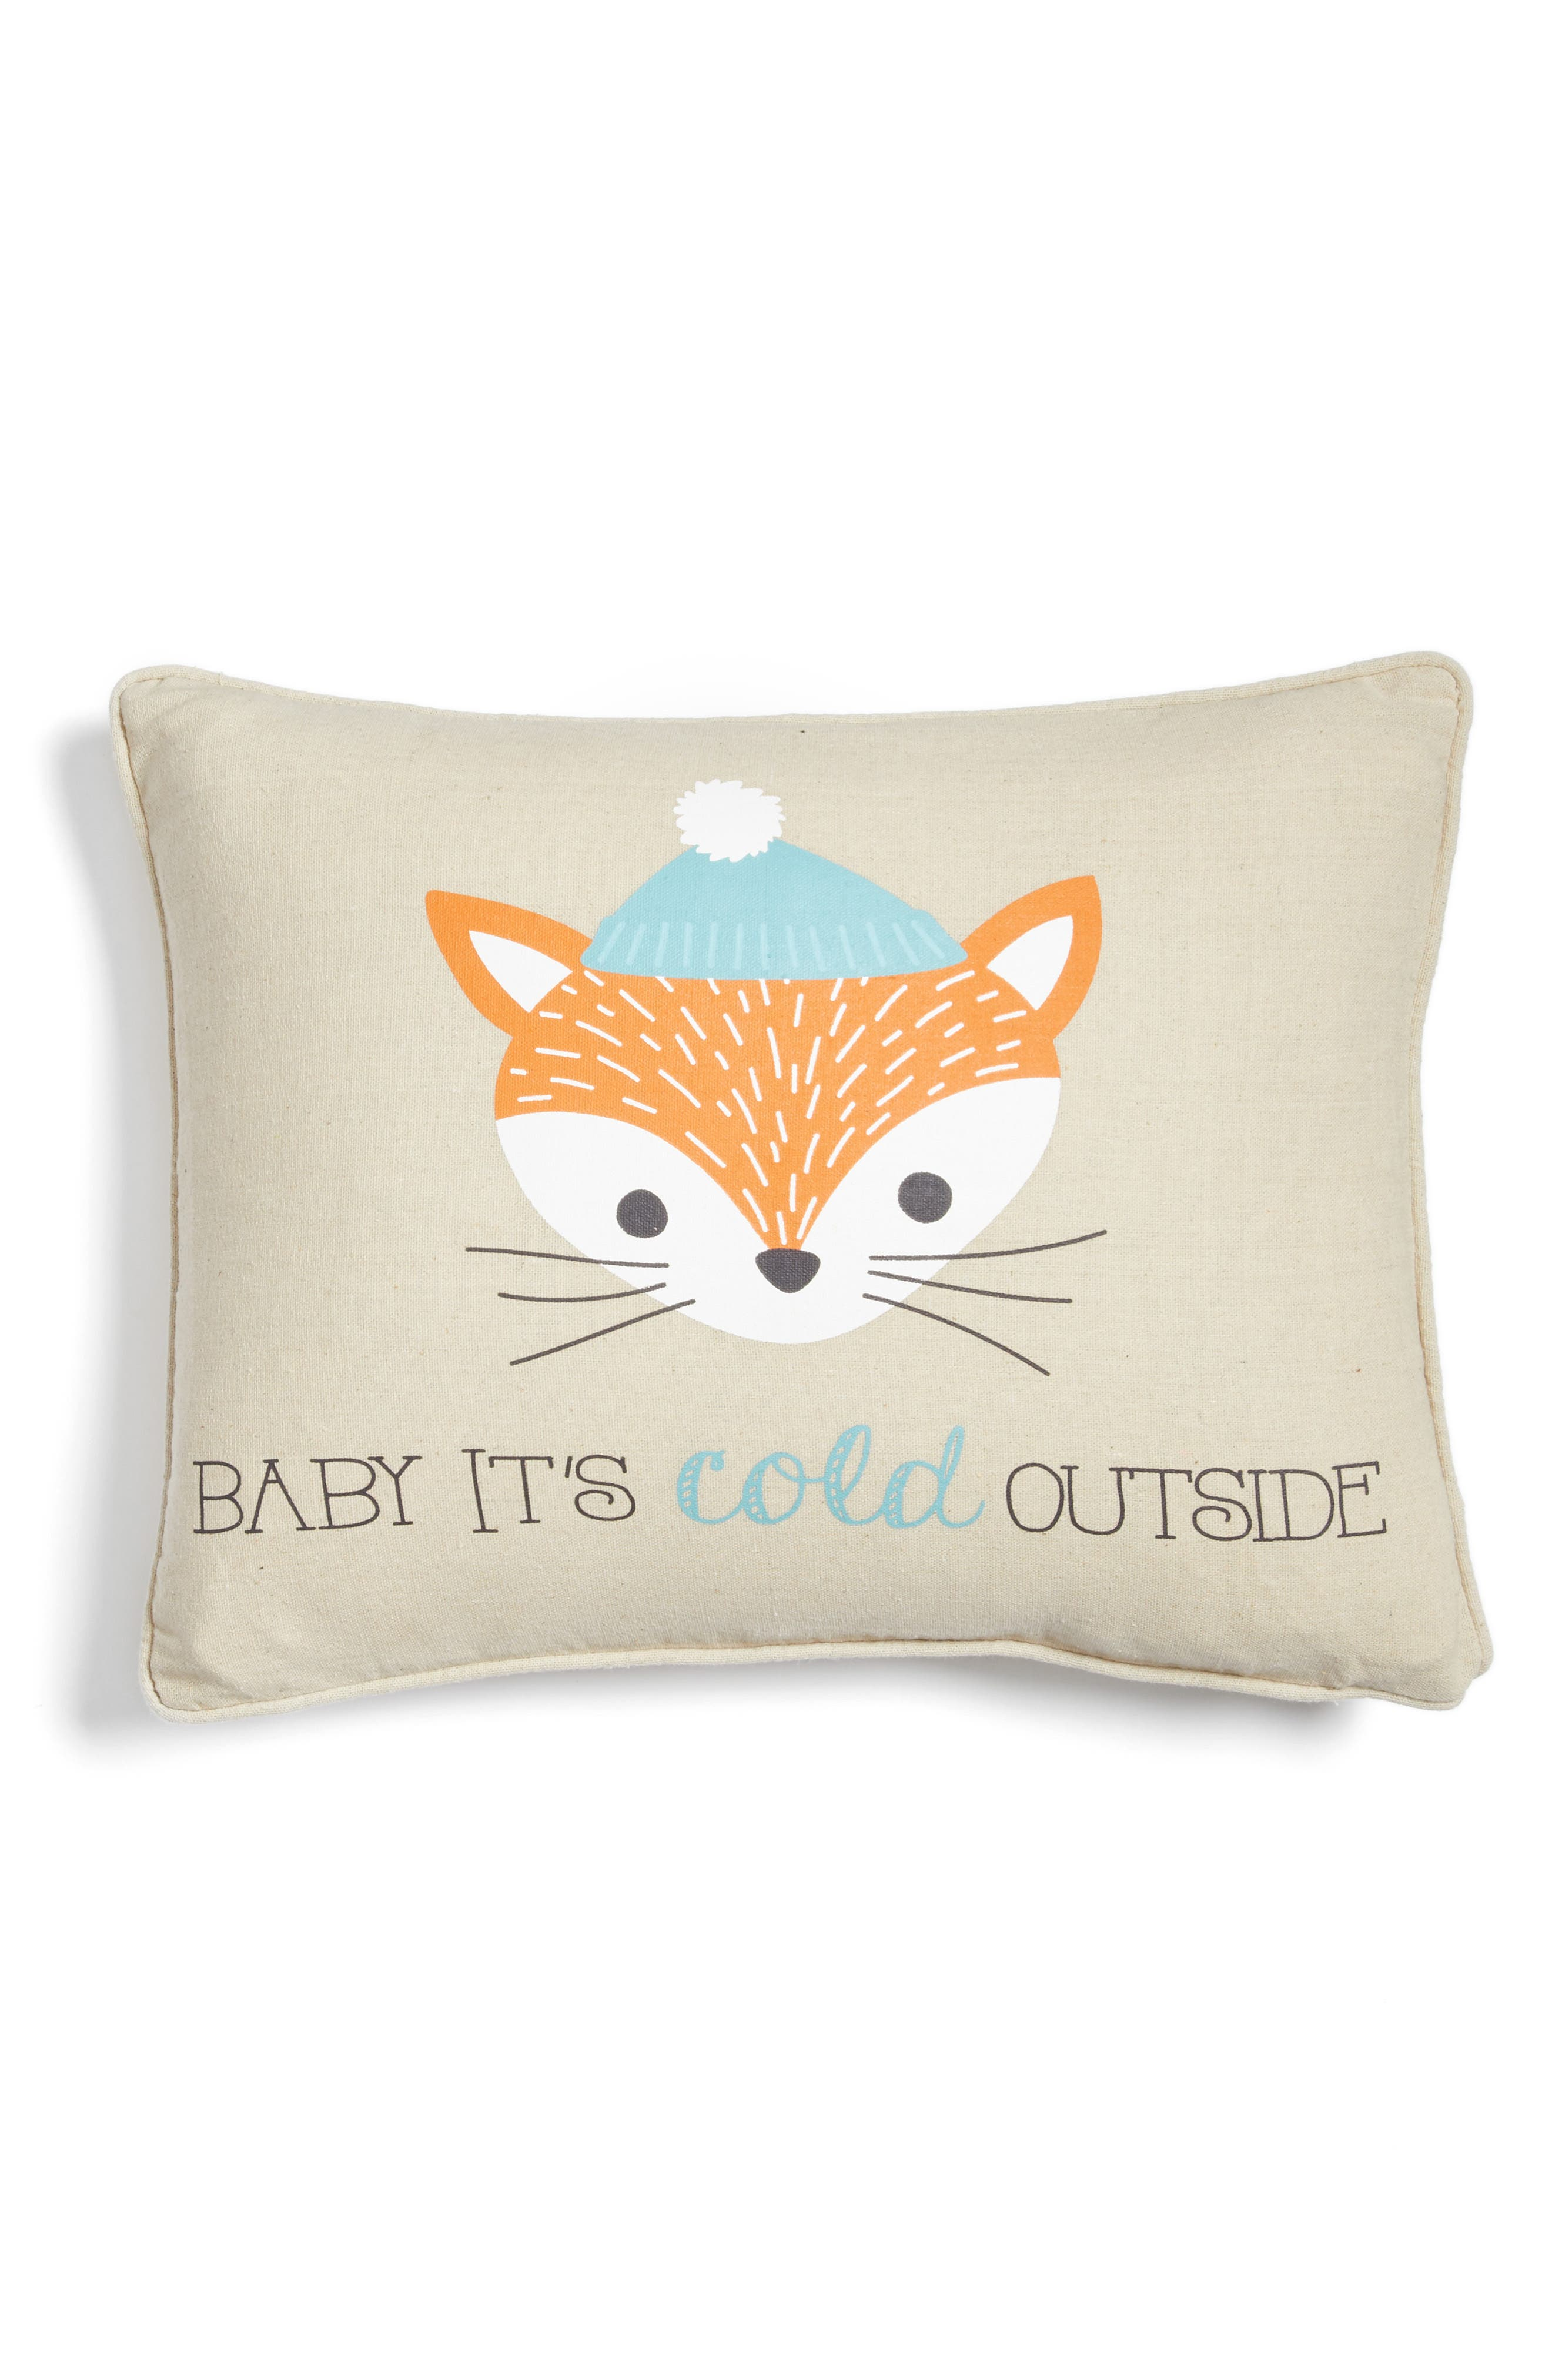 Baby It's Cold Outside Pillow,                         Main,                         color, Taupe